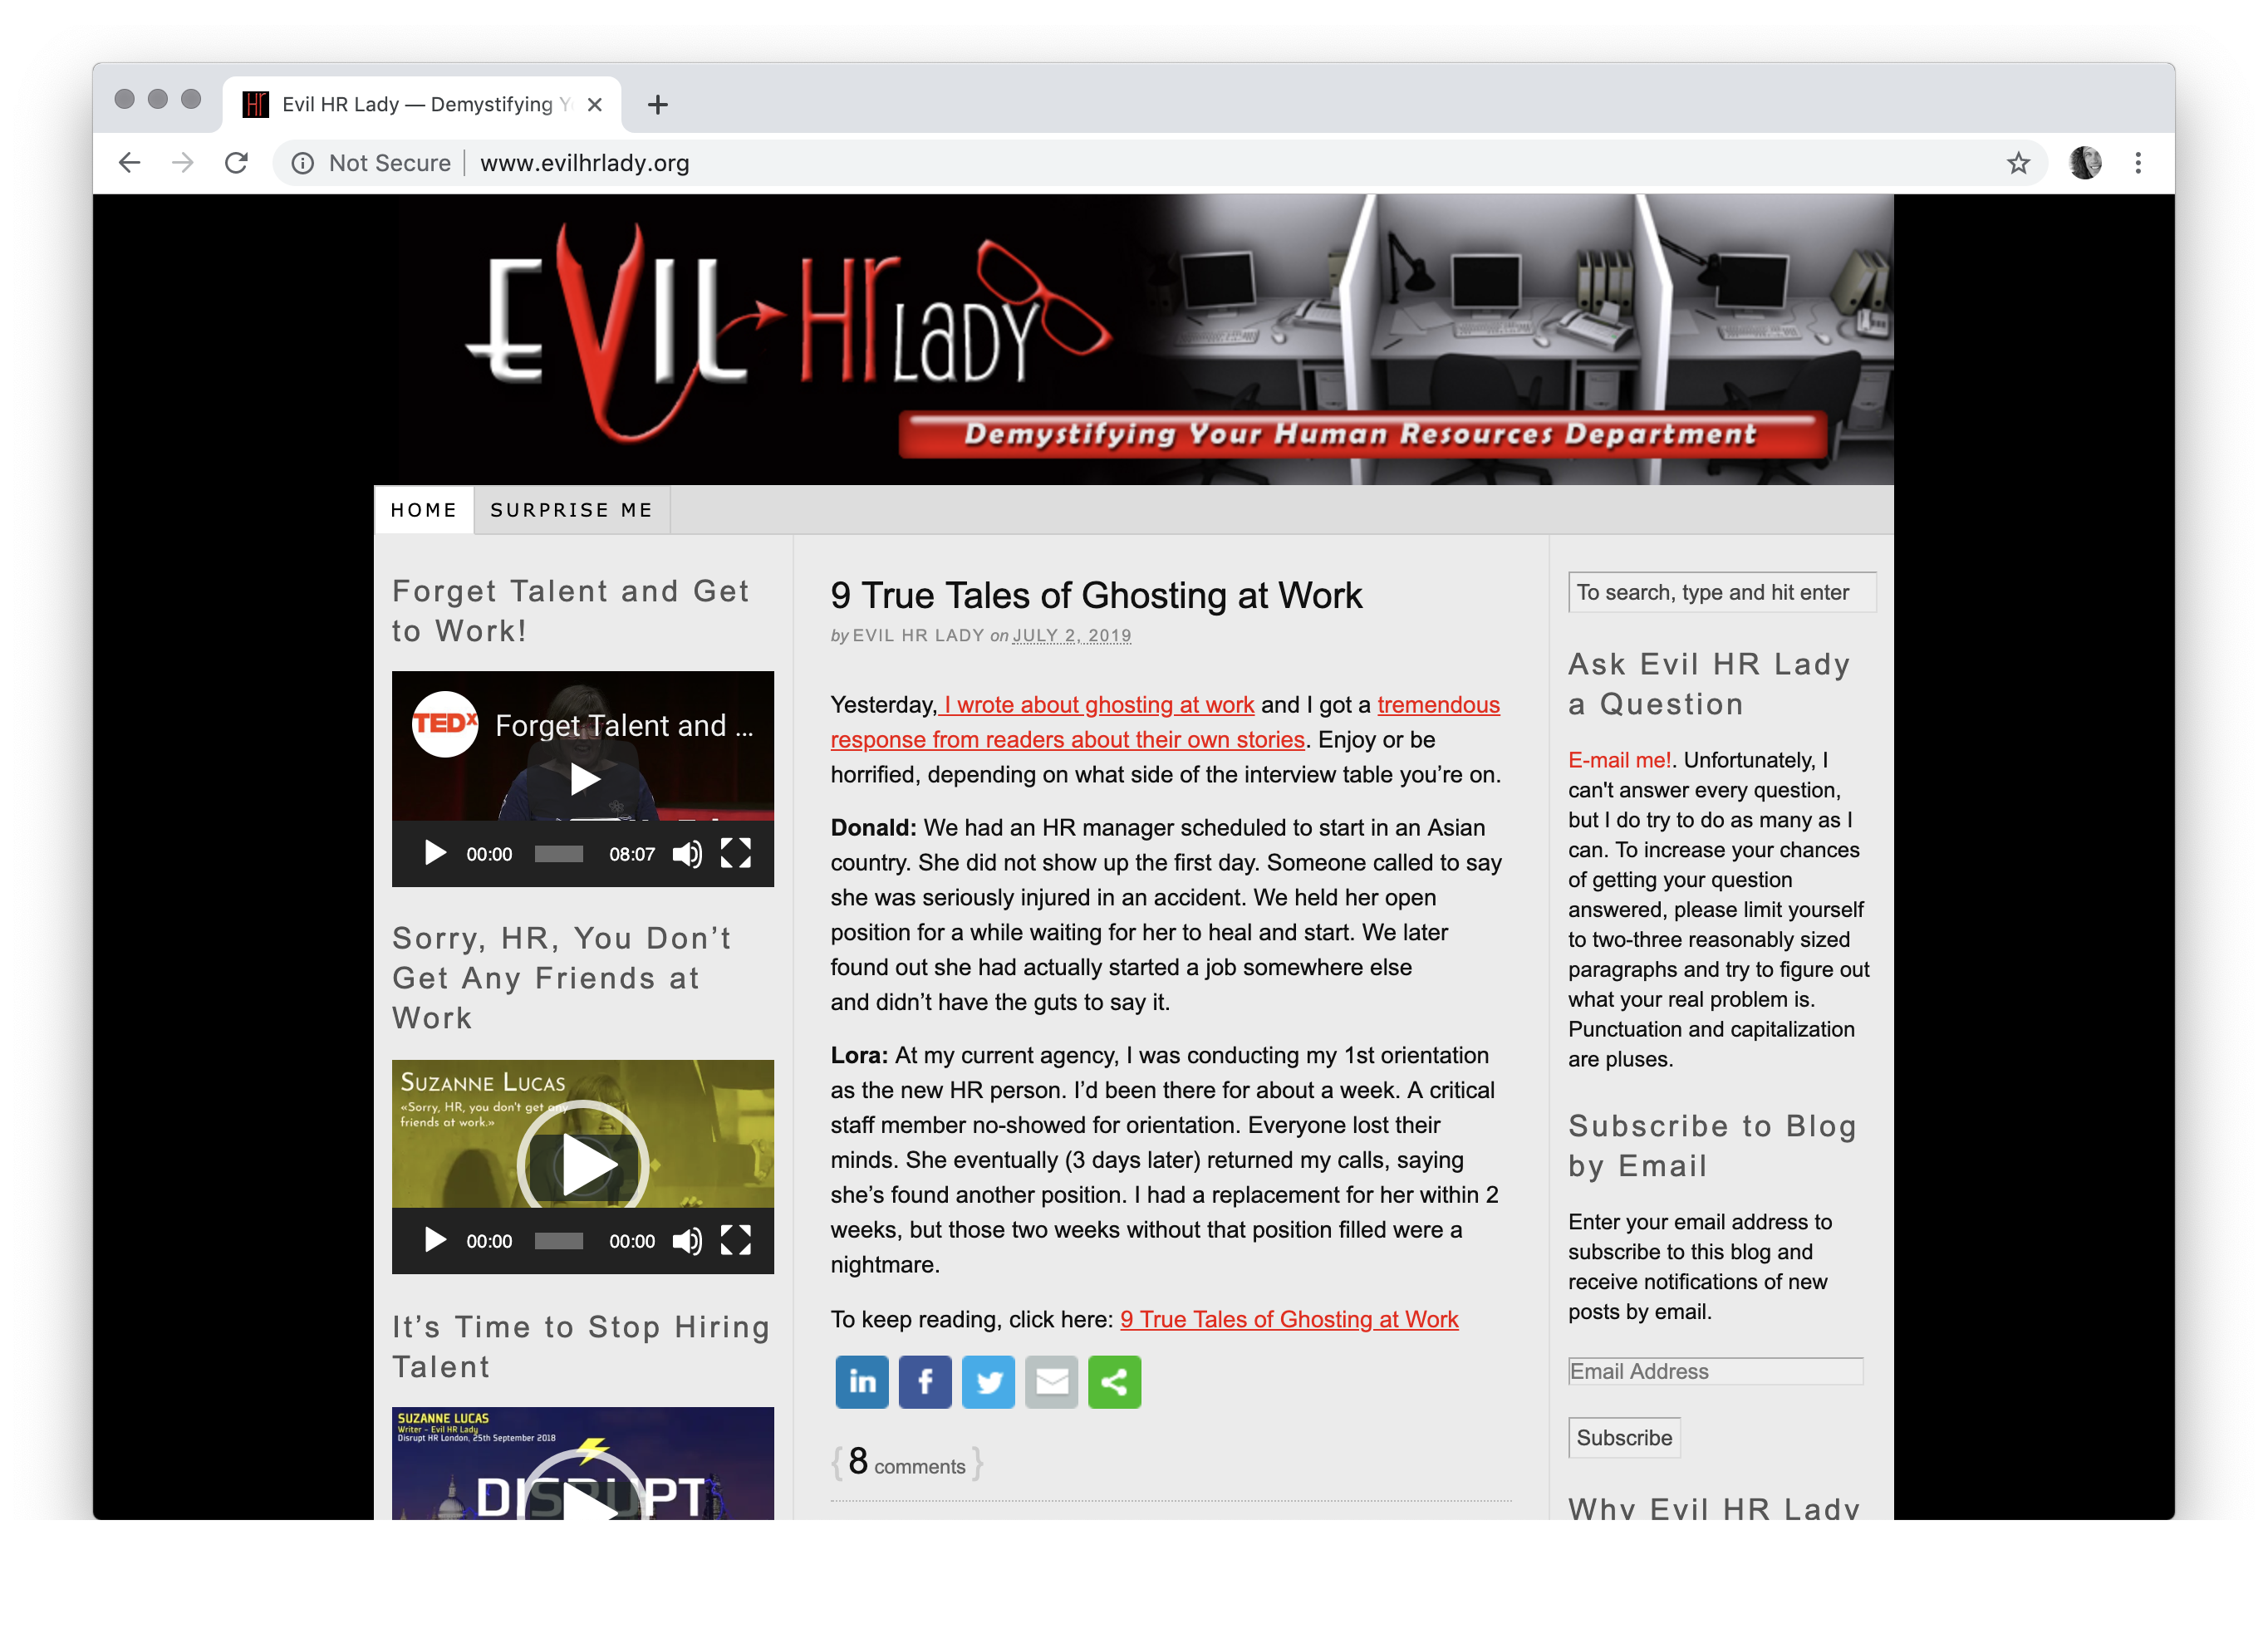 Evil HR Lady — Demystifying Your Human Resources Department